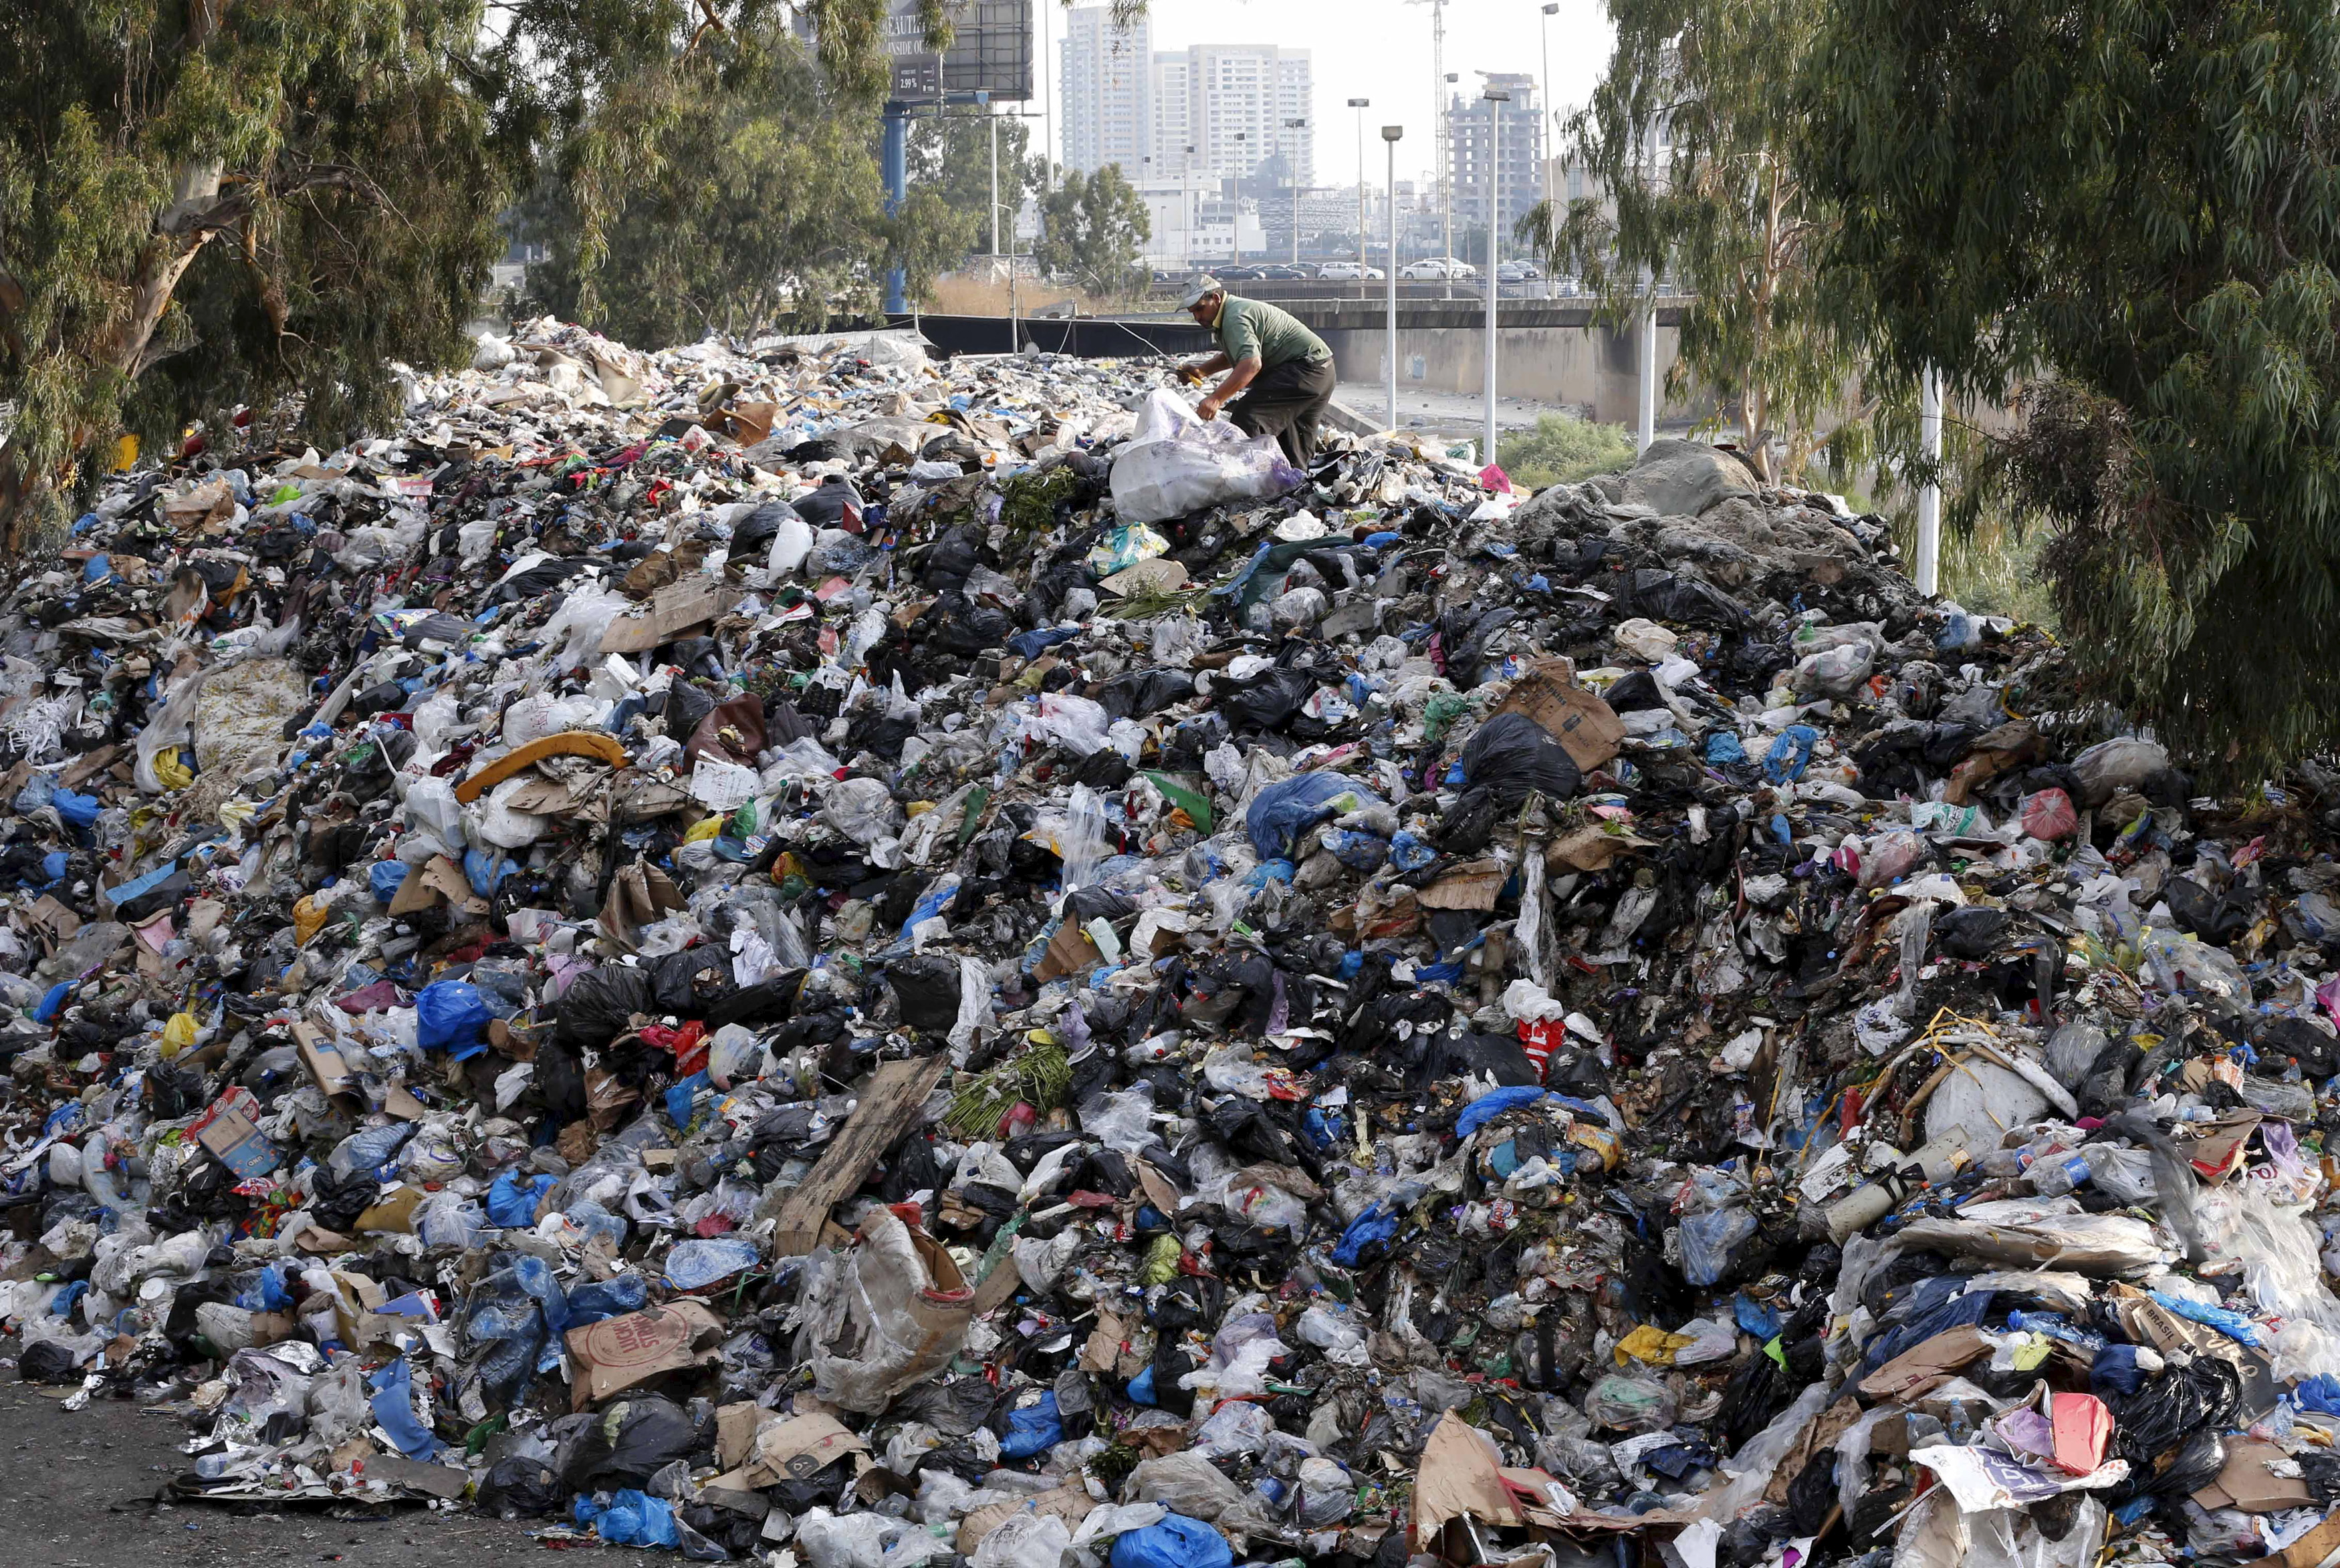 A man sifts through garbage piled on the bank of the Beirut River in Lebanon on Aug. 24. Photo by Mohamed Azakir/Reuters